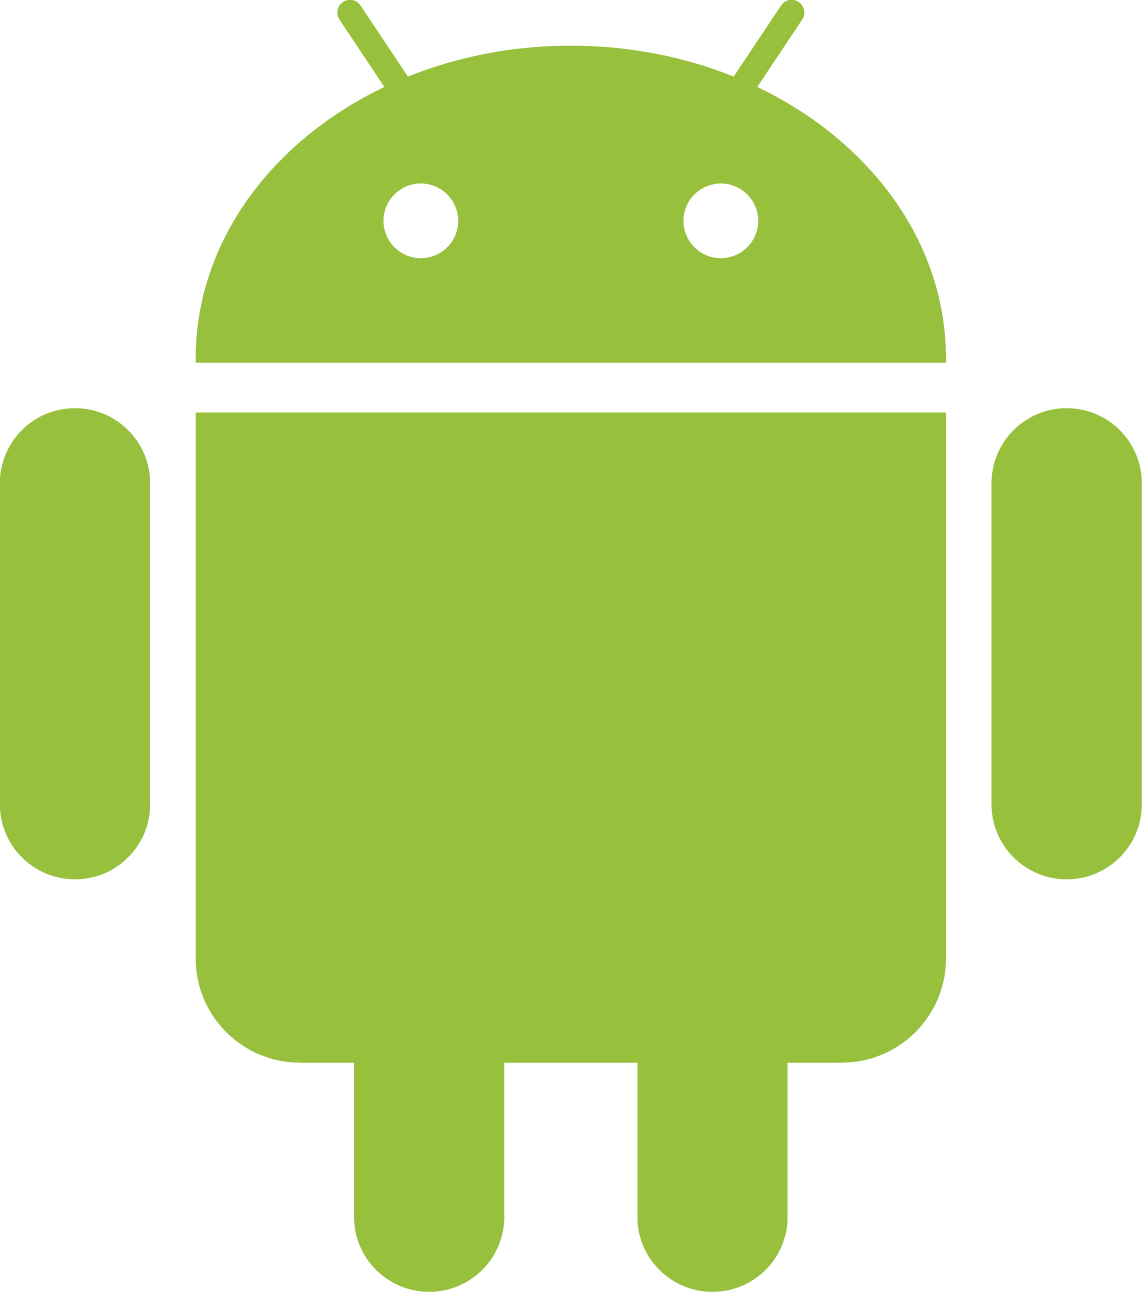 15 android icon symbols images android vector icon